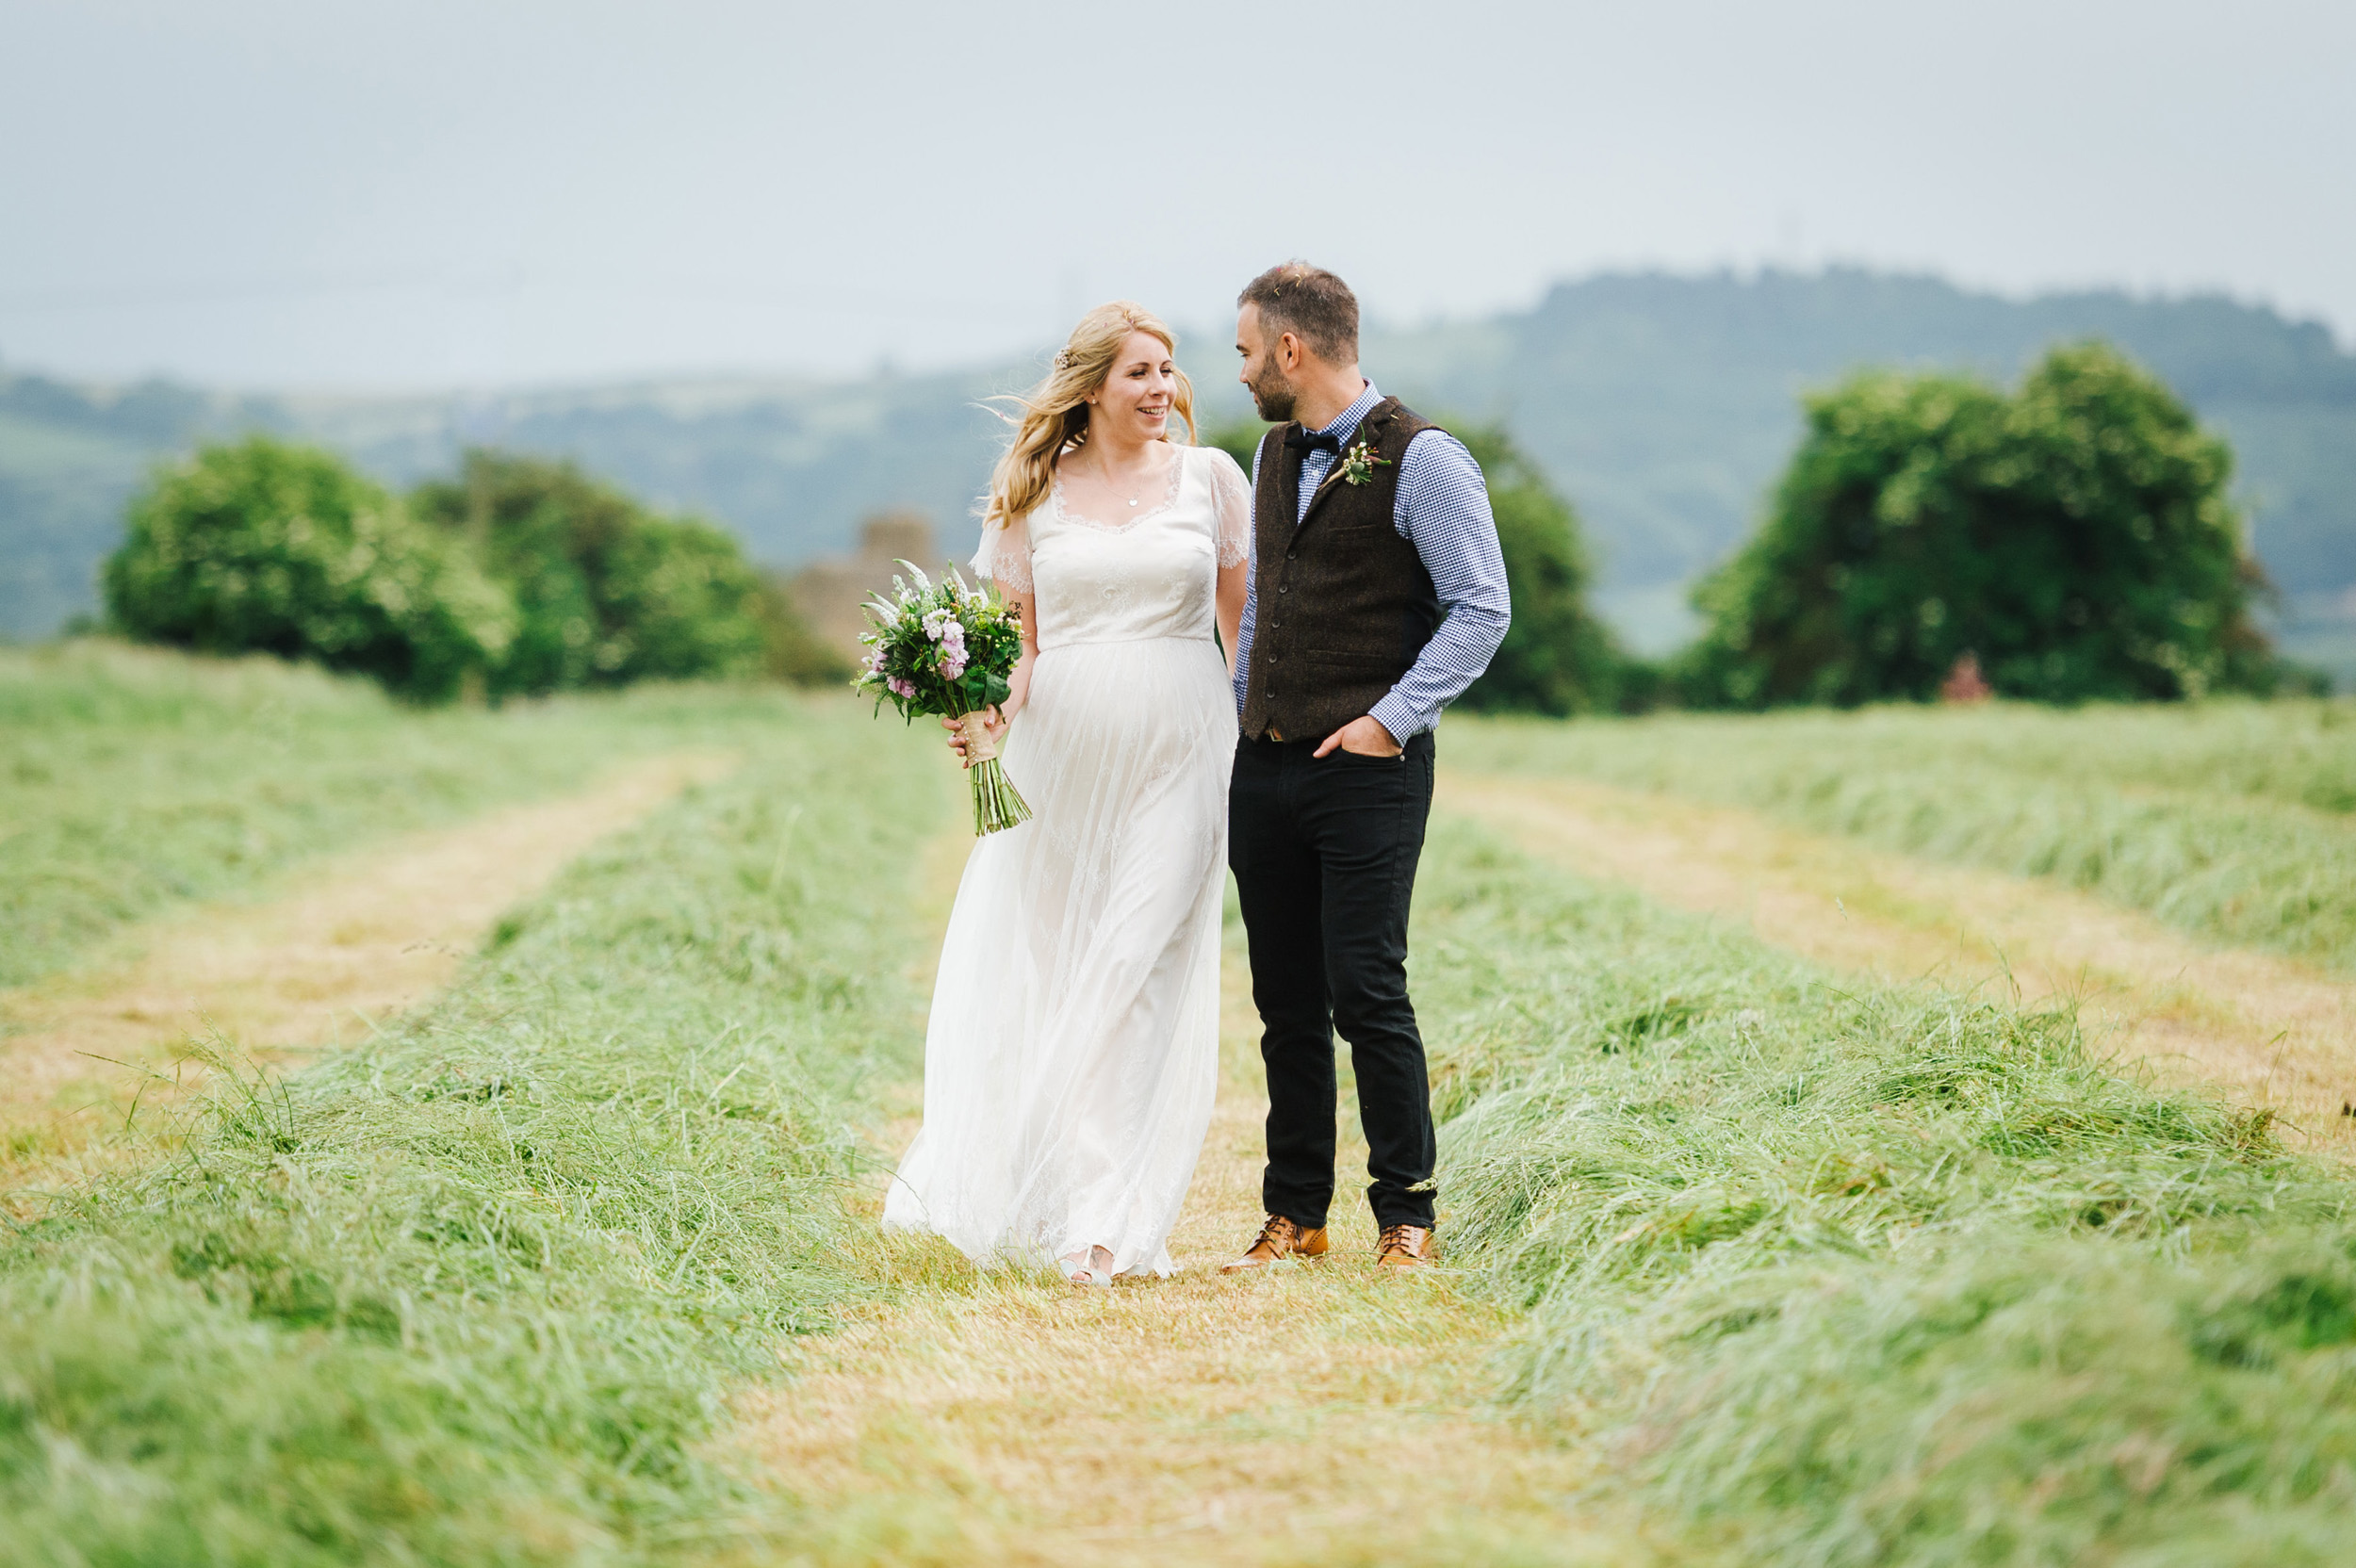 Lace-Wedding-Gown-Rustic-Barn-Wedding-Yorkshire-Kate-Beaumont-22.jpg